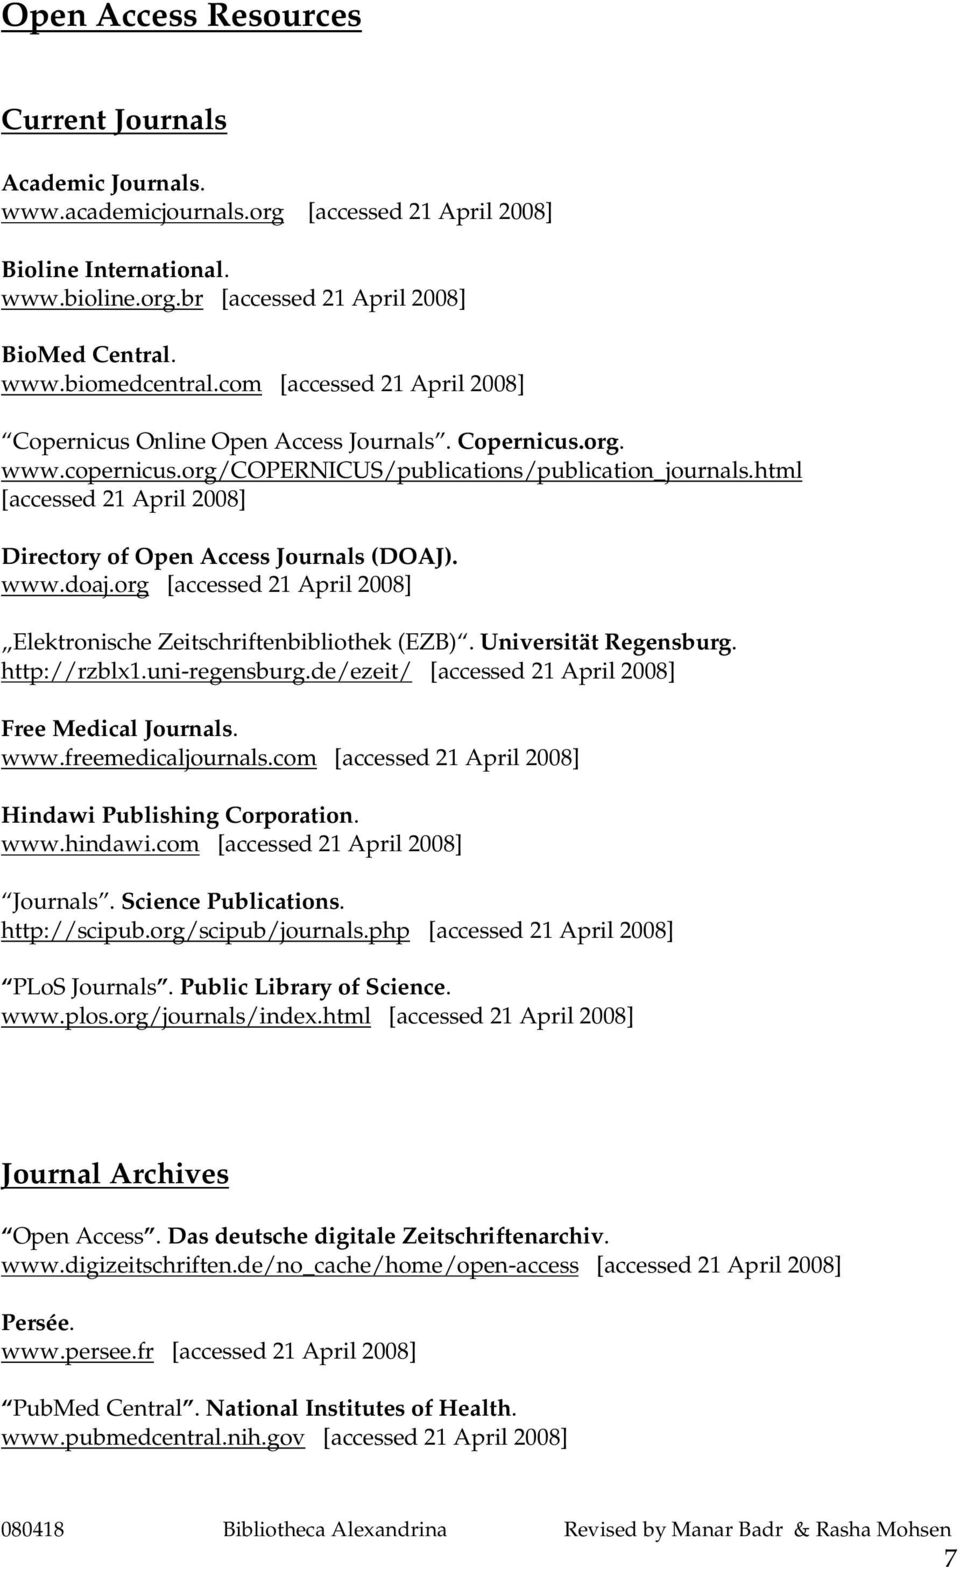 org Elektronische Zeitschriftenbibliothek (EZB). Universität Regensburg. http://rzblx1.uni-regensburg.de/ezeit/ Free Medical Journals. www.freemedicaljournals.com Hindawi Publishing Corporation. www.hindawi.